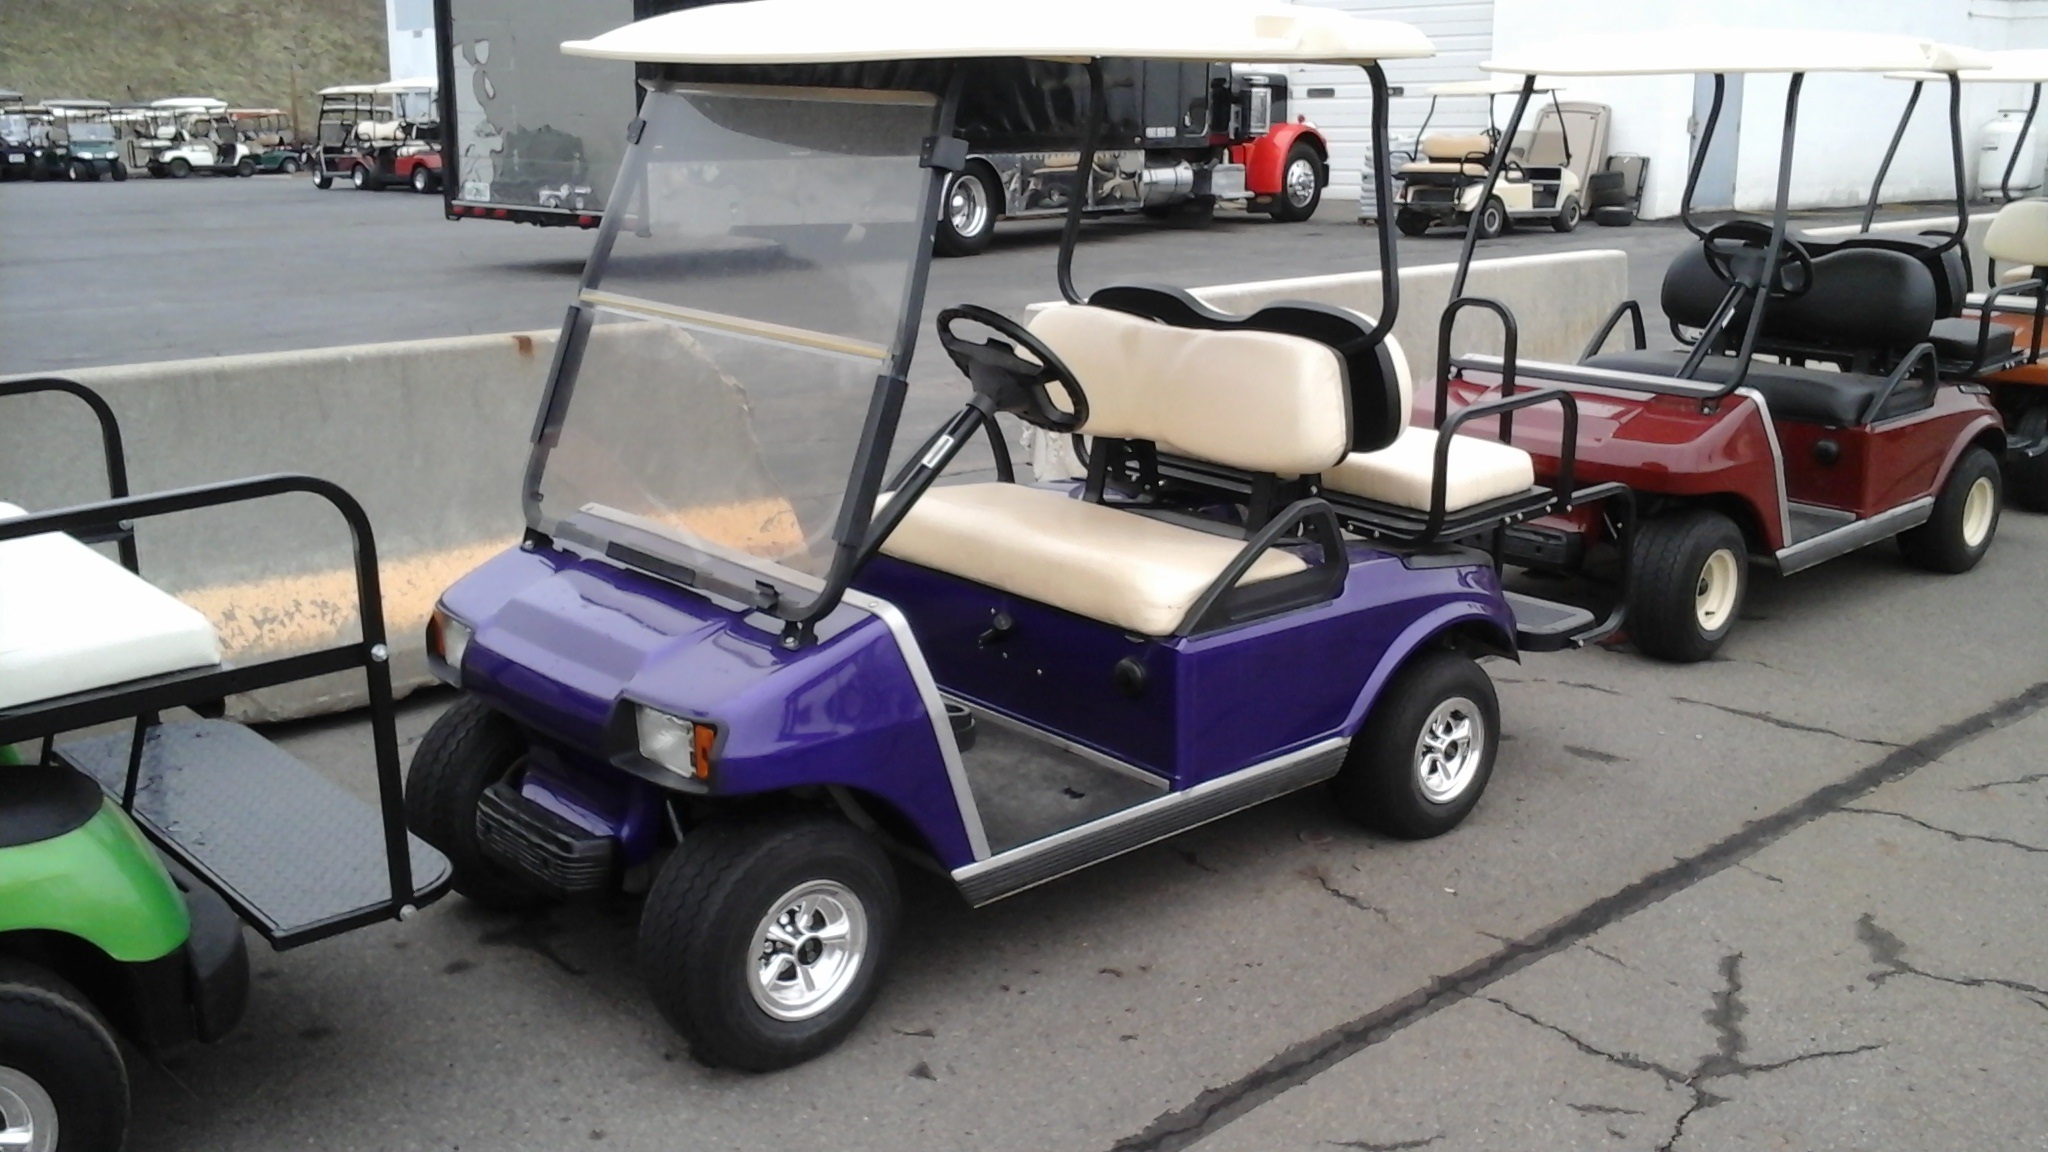 Watch furthermore Western Golf Cart 42 Volt Wiring Diagram additionally Carryall 500 additionally 12884 Pimped Out Golf Carts 21 Pics besides Golf Cart Accessories. on yamaha powered golf carts